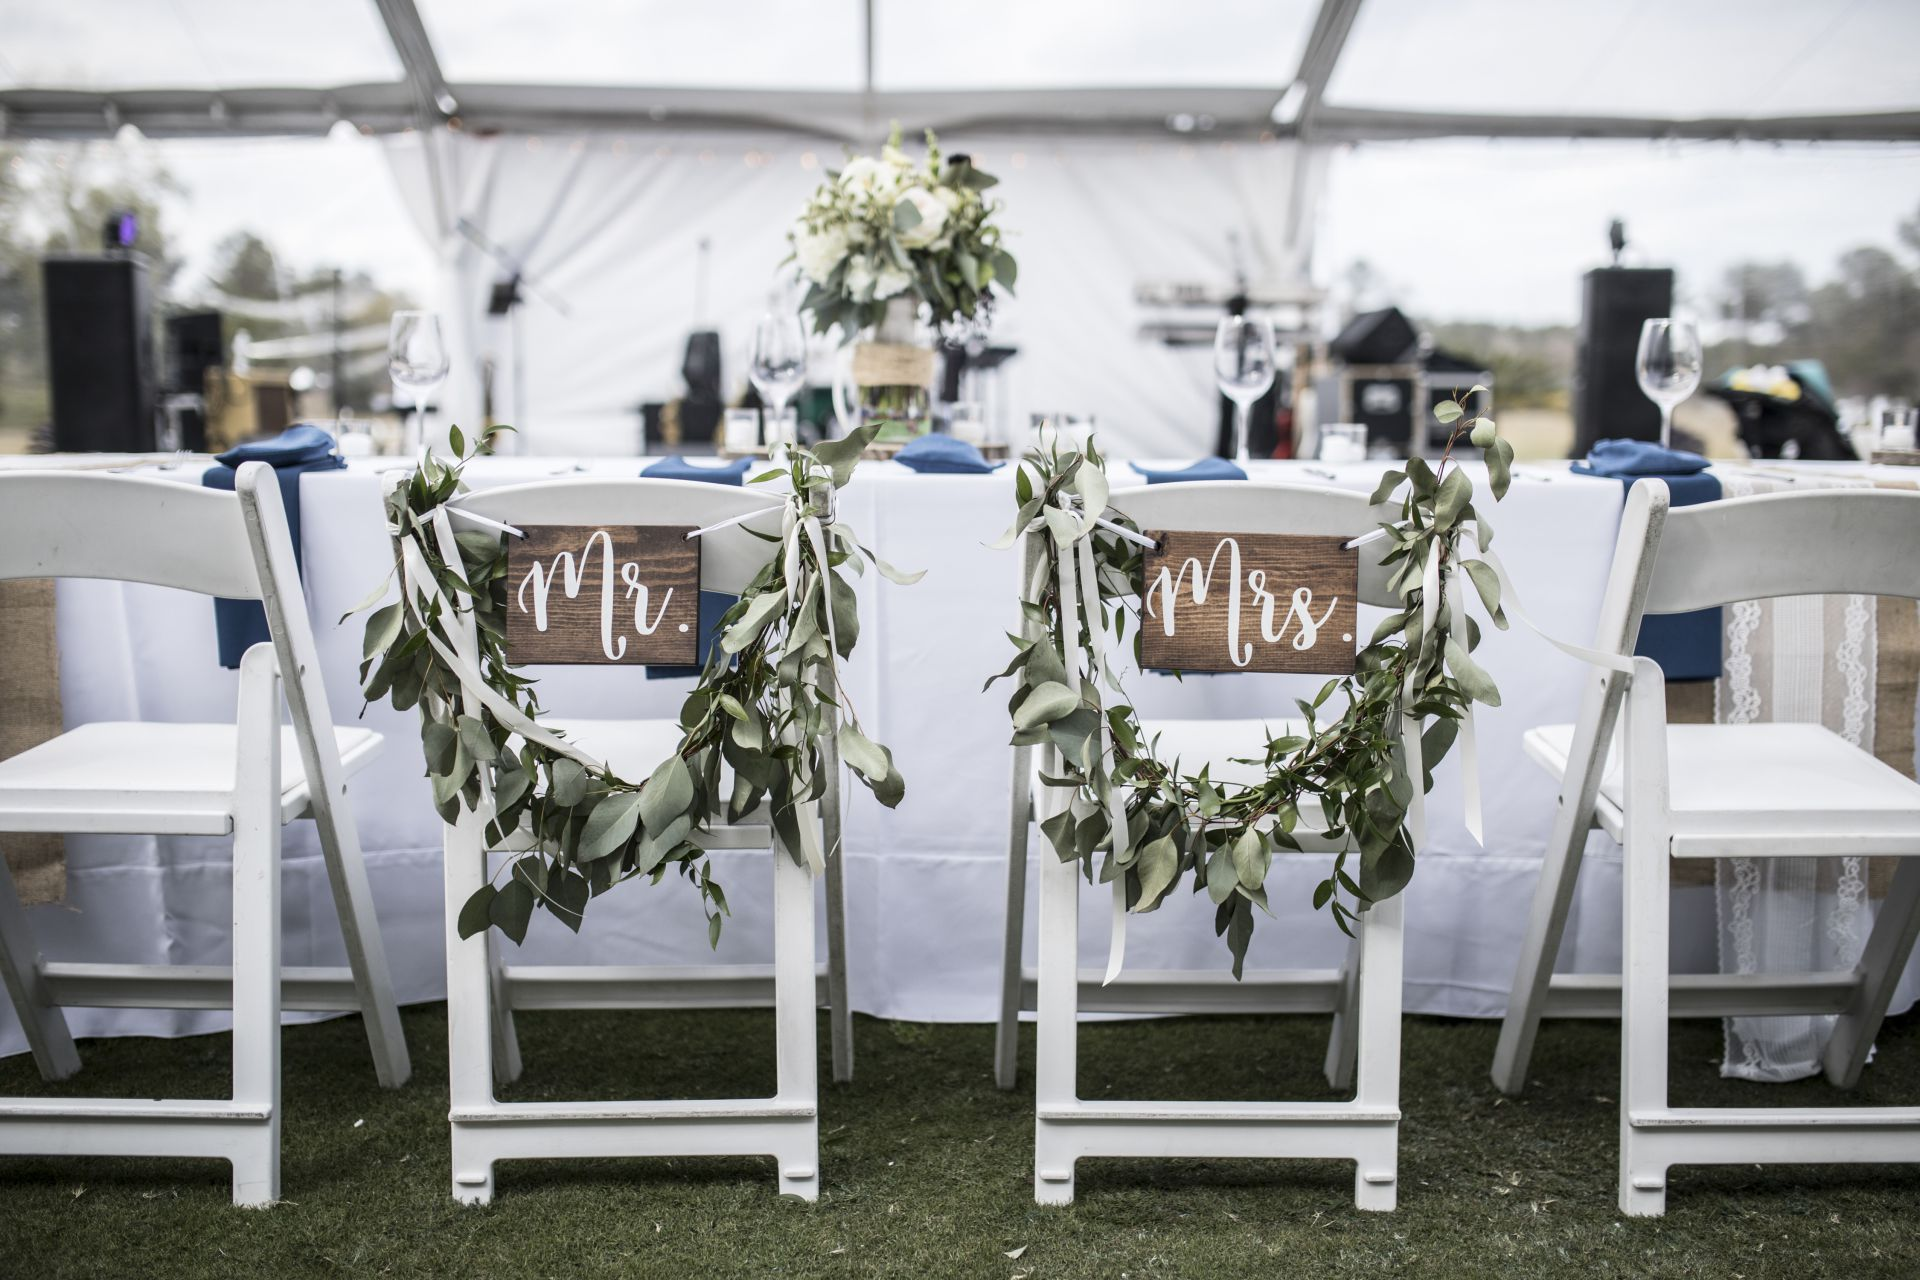 An image of a table at a reception with two decorated chairs